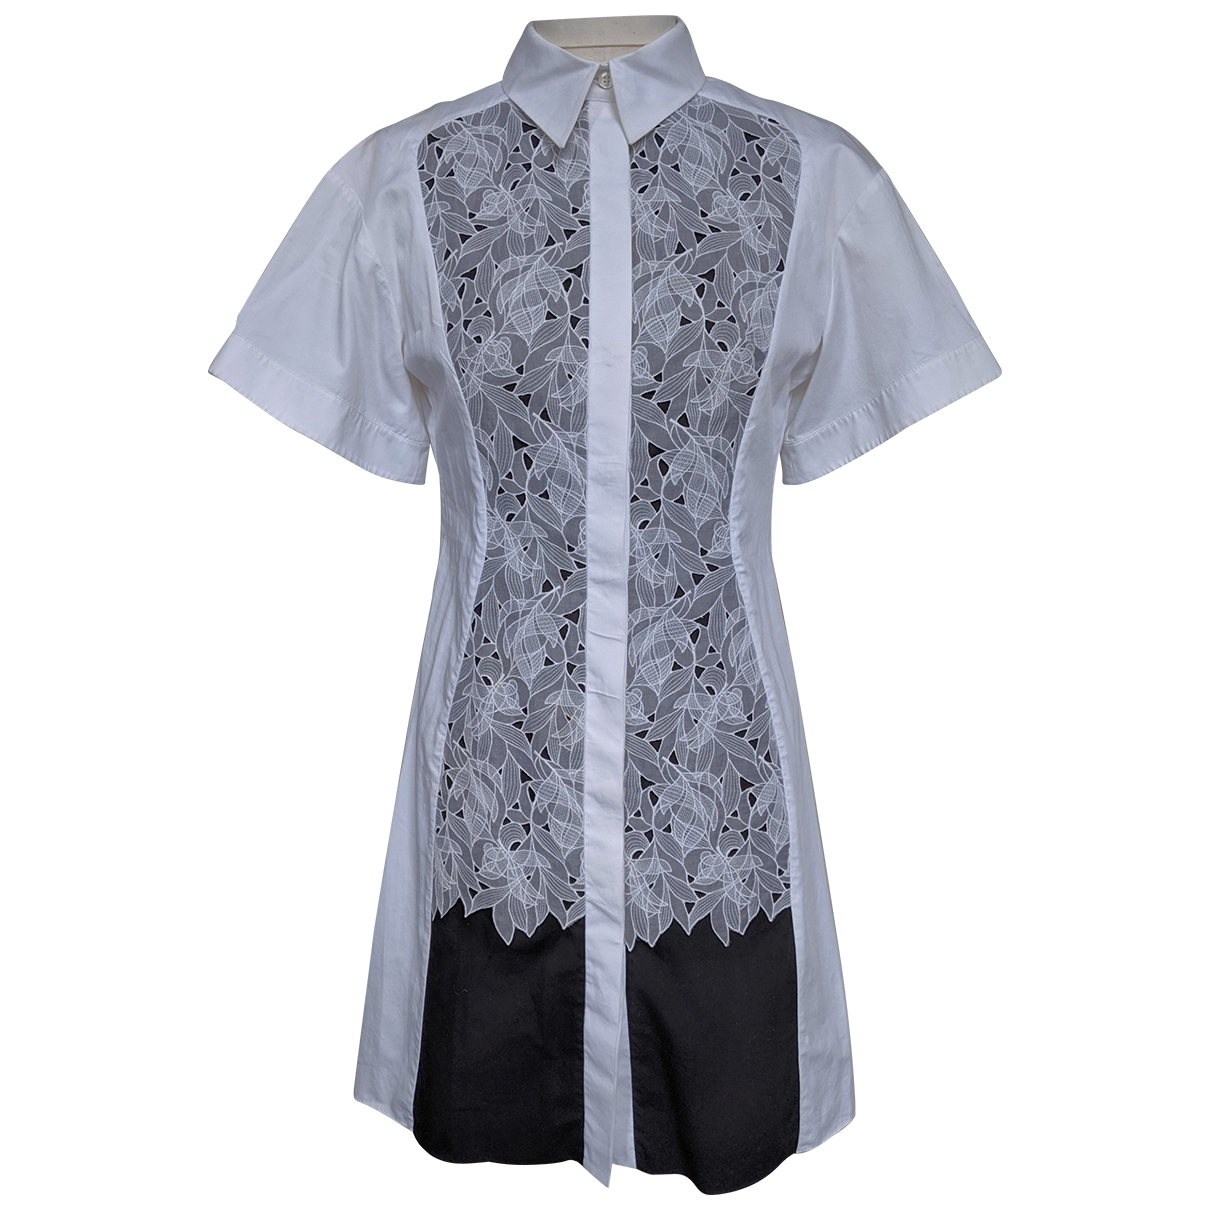 Peter Pilotto \N White Cotton dress for Women 10 UK